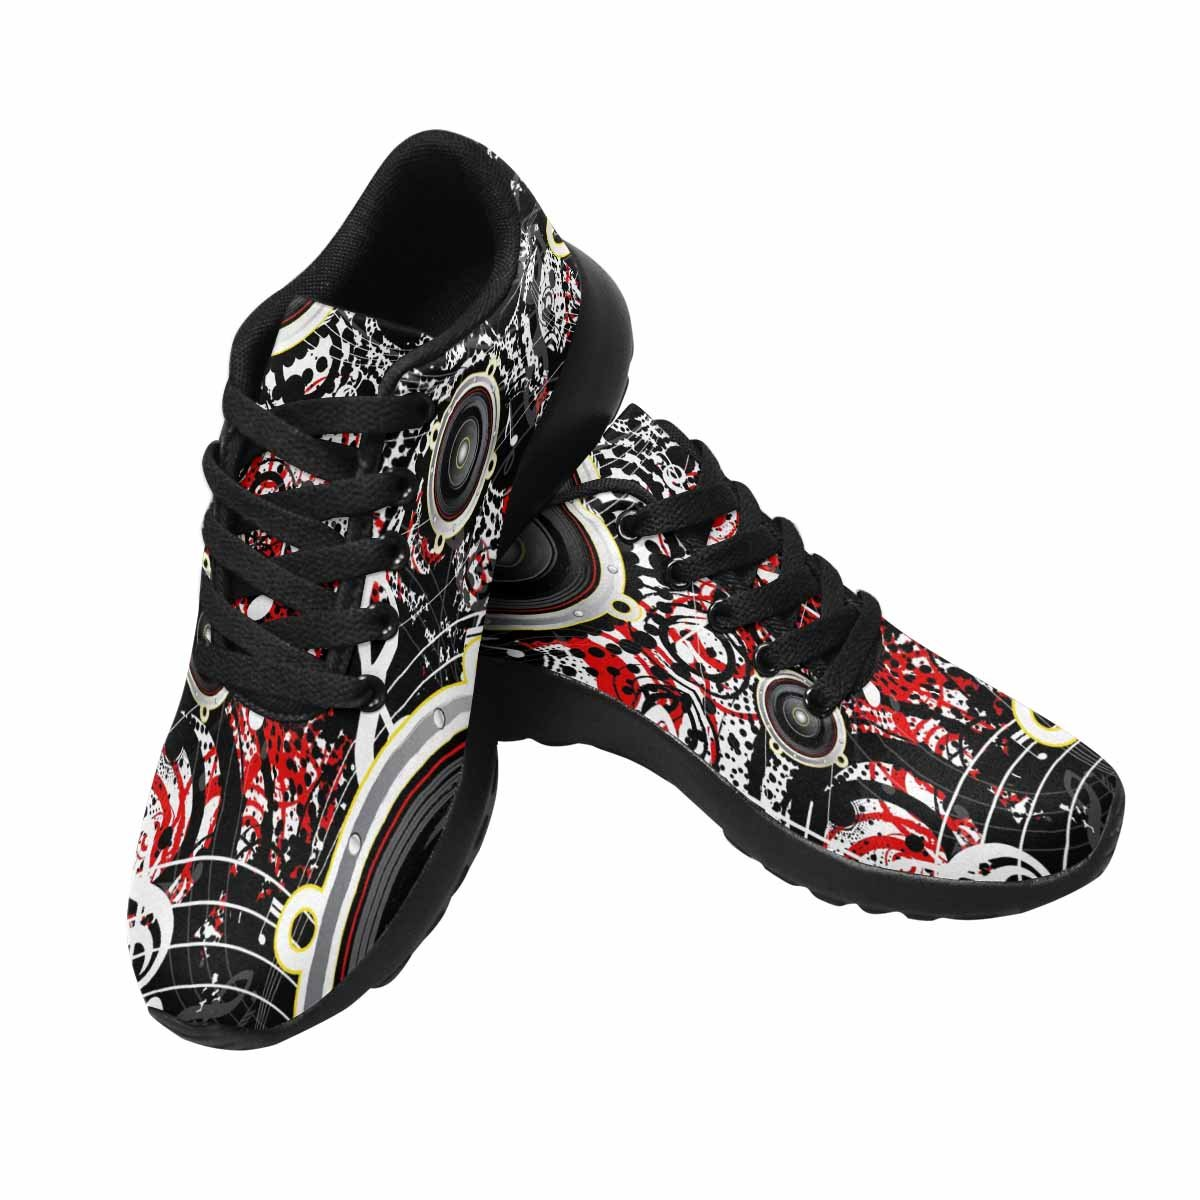 InterestPrint Women's Go Easy Walking Comfort Sports Athletic Shoes Musical Grunge Background, Retro Style US 7